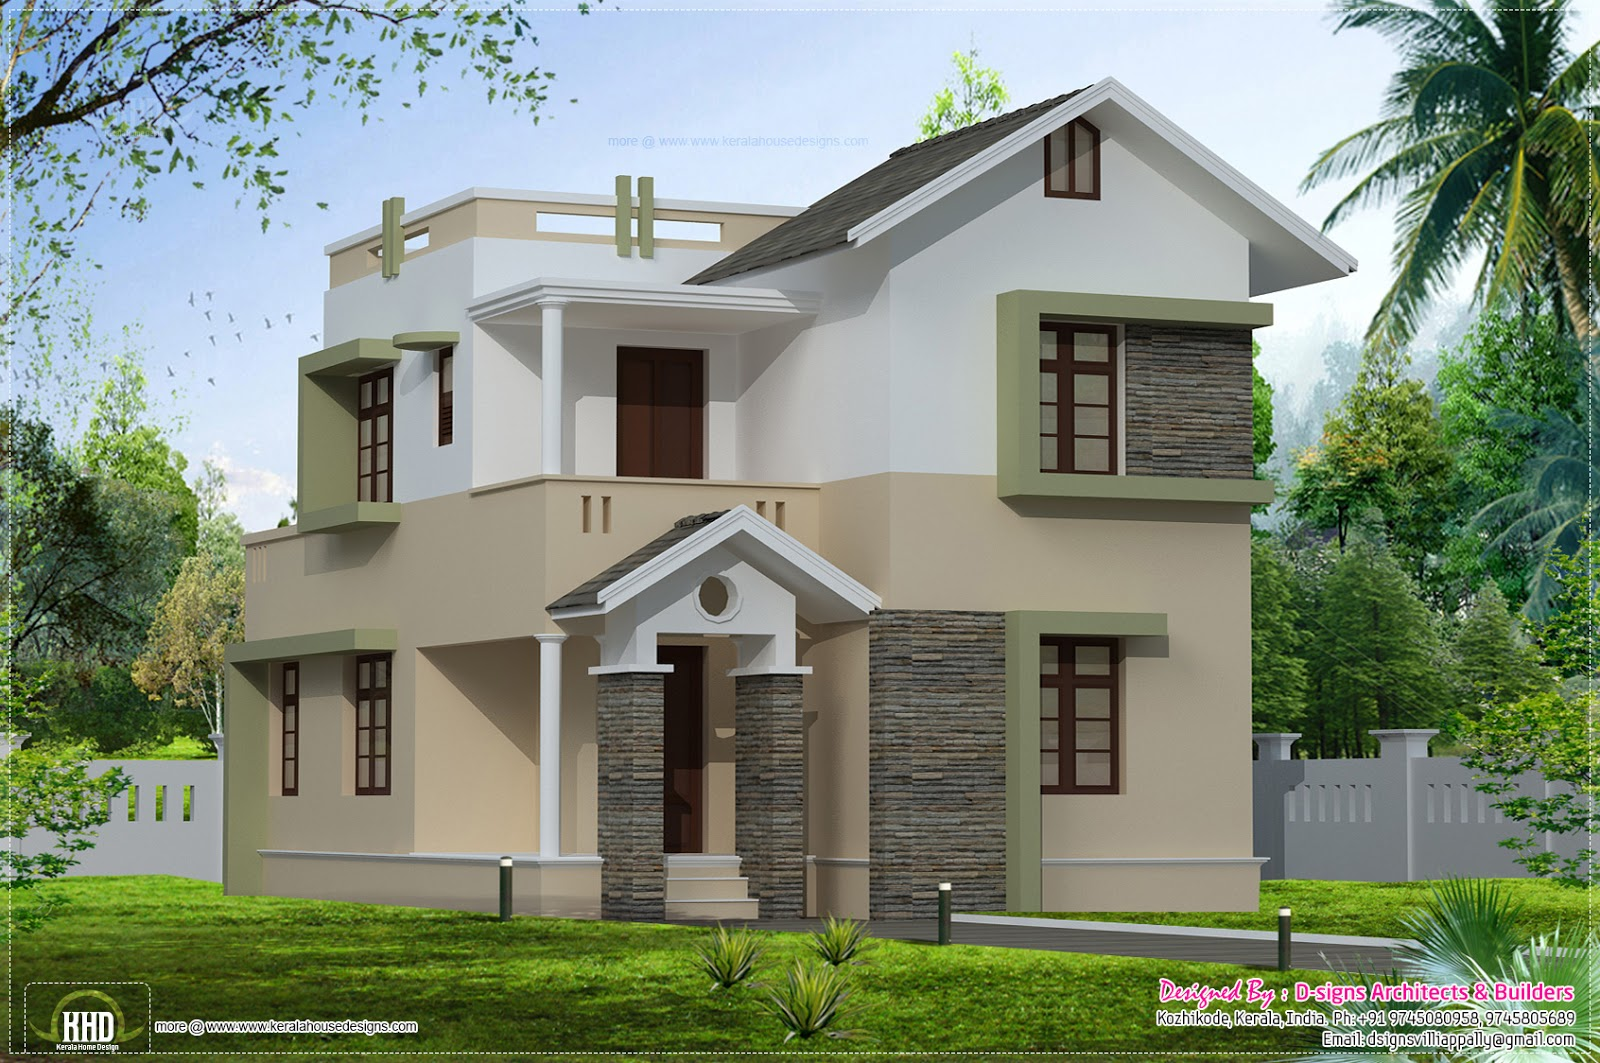 Front elevation of small houses home design and decor for Beautiful small houses